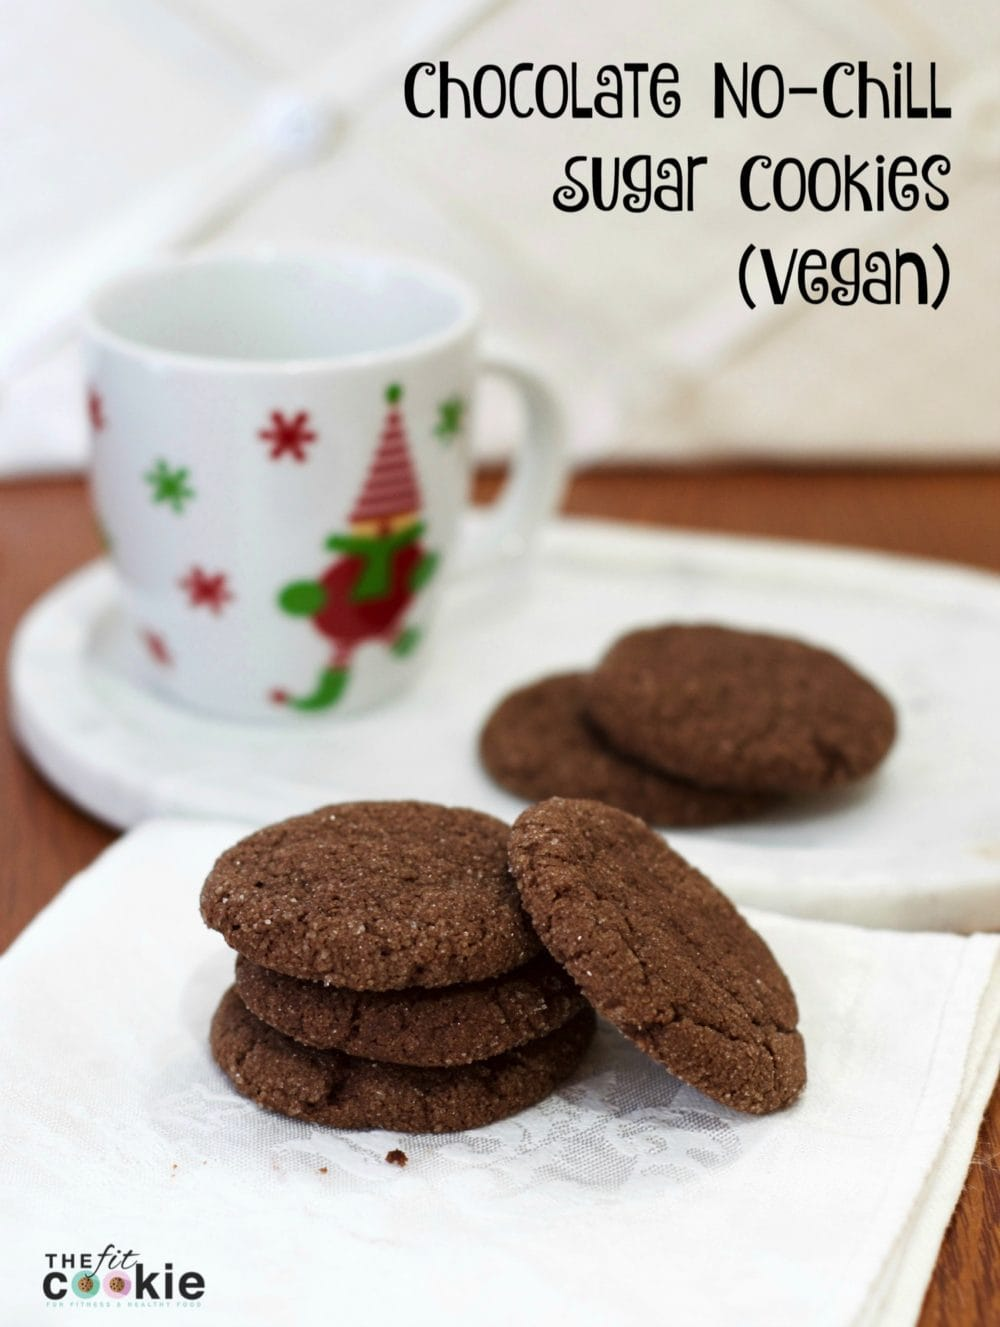 Chocolate No-Chill Vegan Sugar Cookies: quick and easy to make - #recipe #vegan @thefitcookie